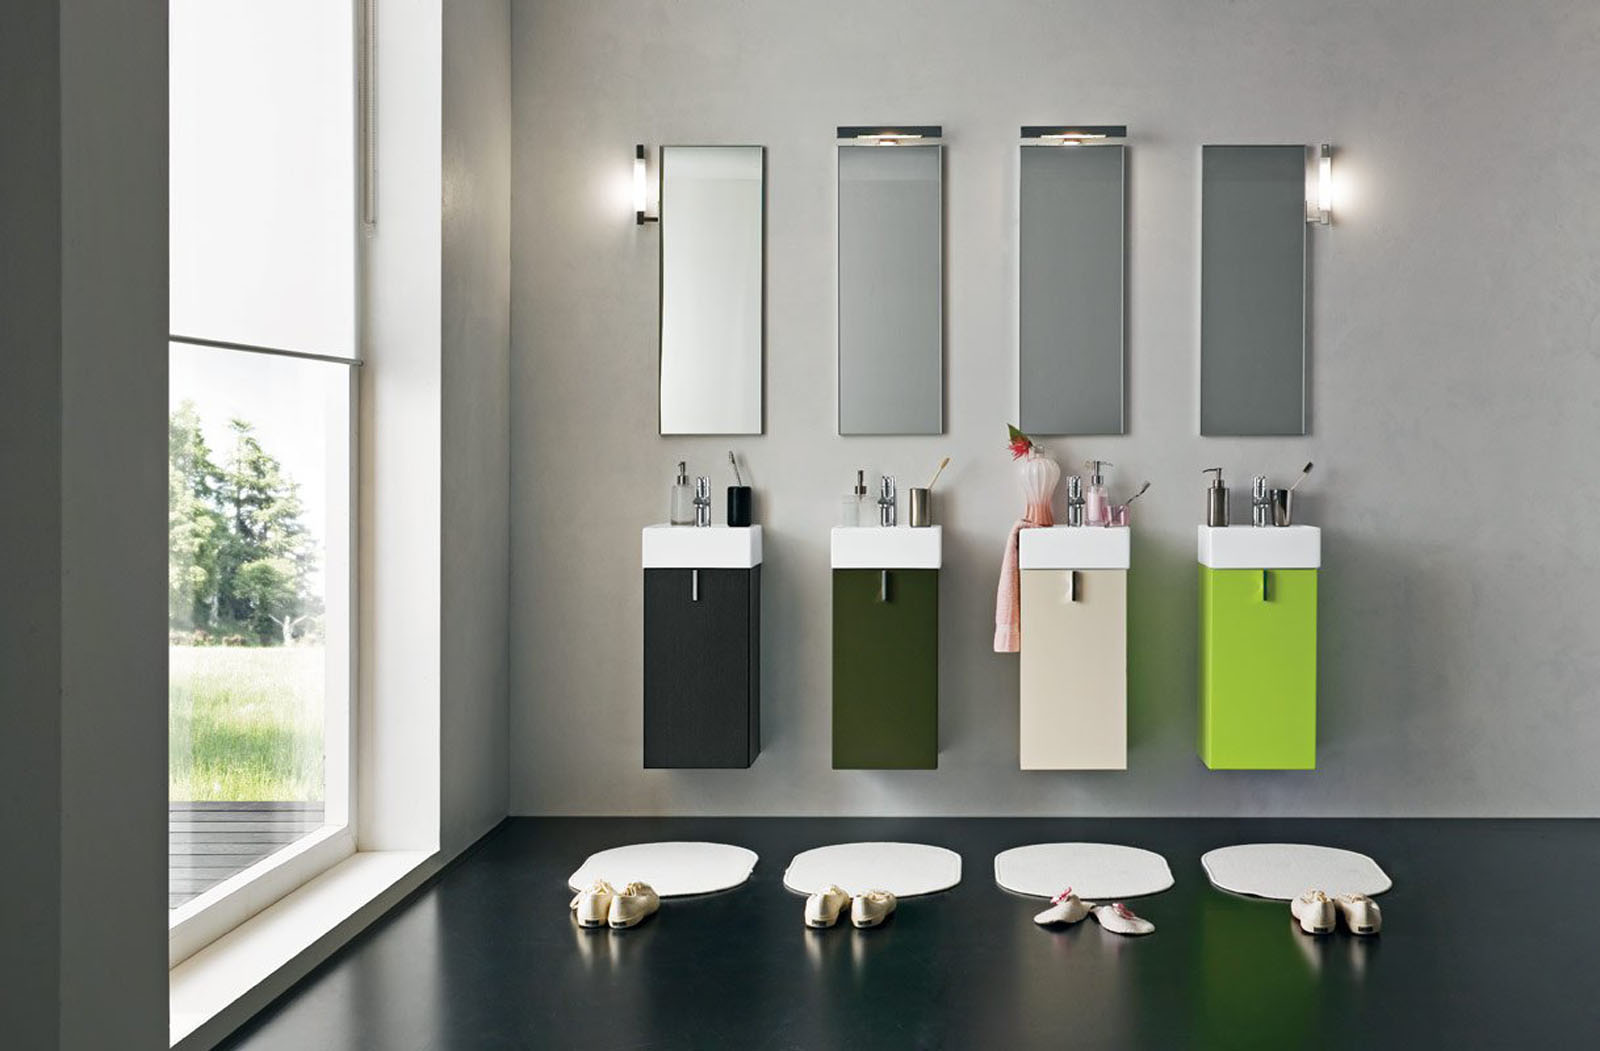 Inspiring Colorful Touches on Modern Bathroom Vanity Blended with Grey Wall